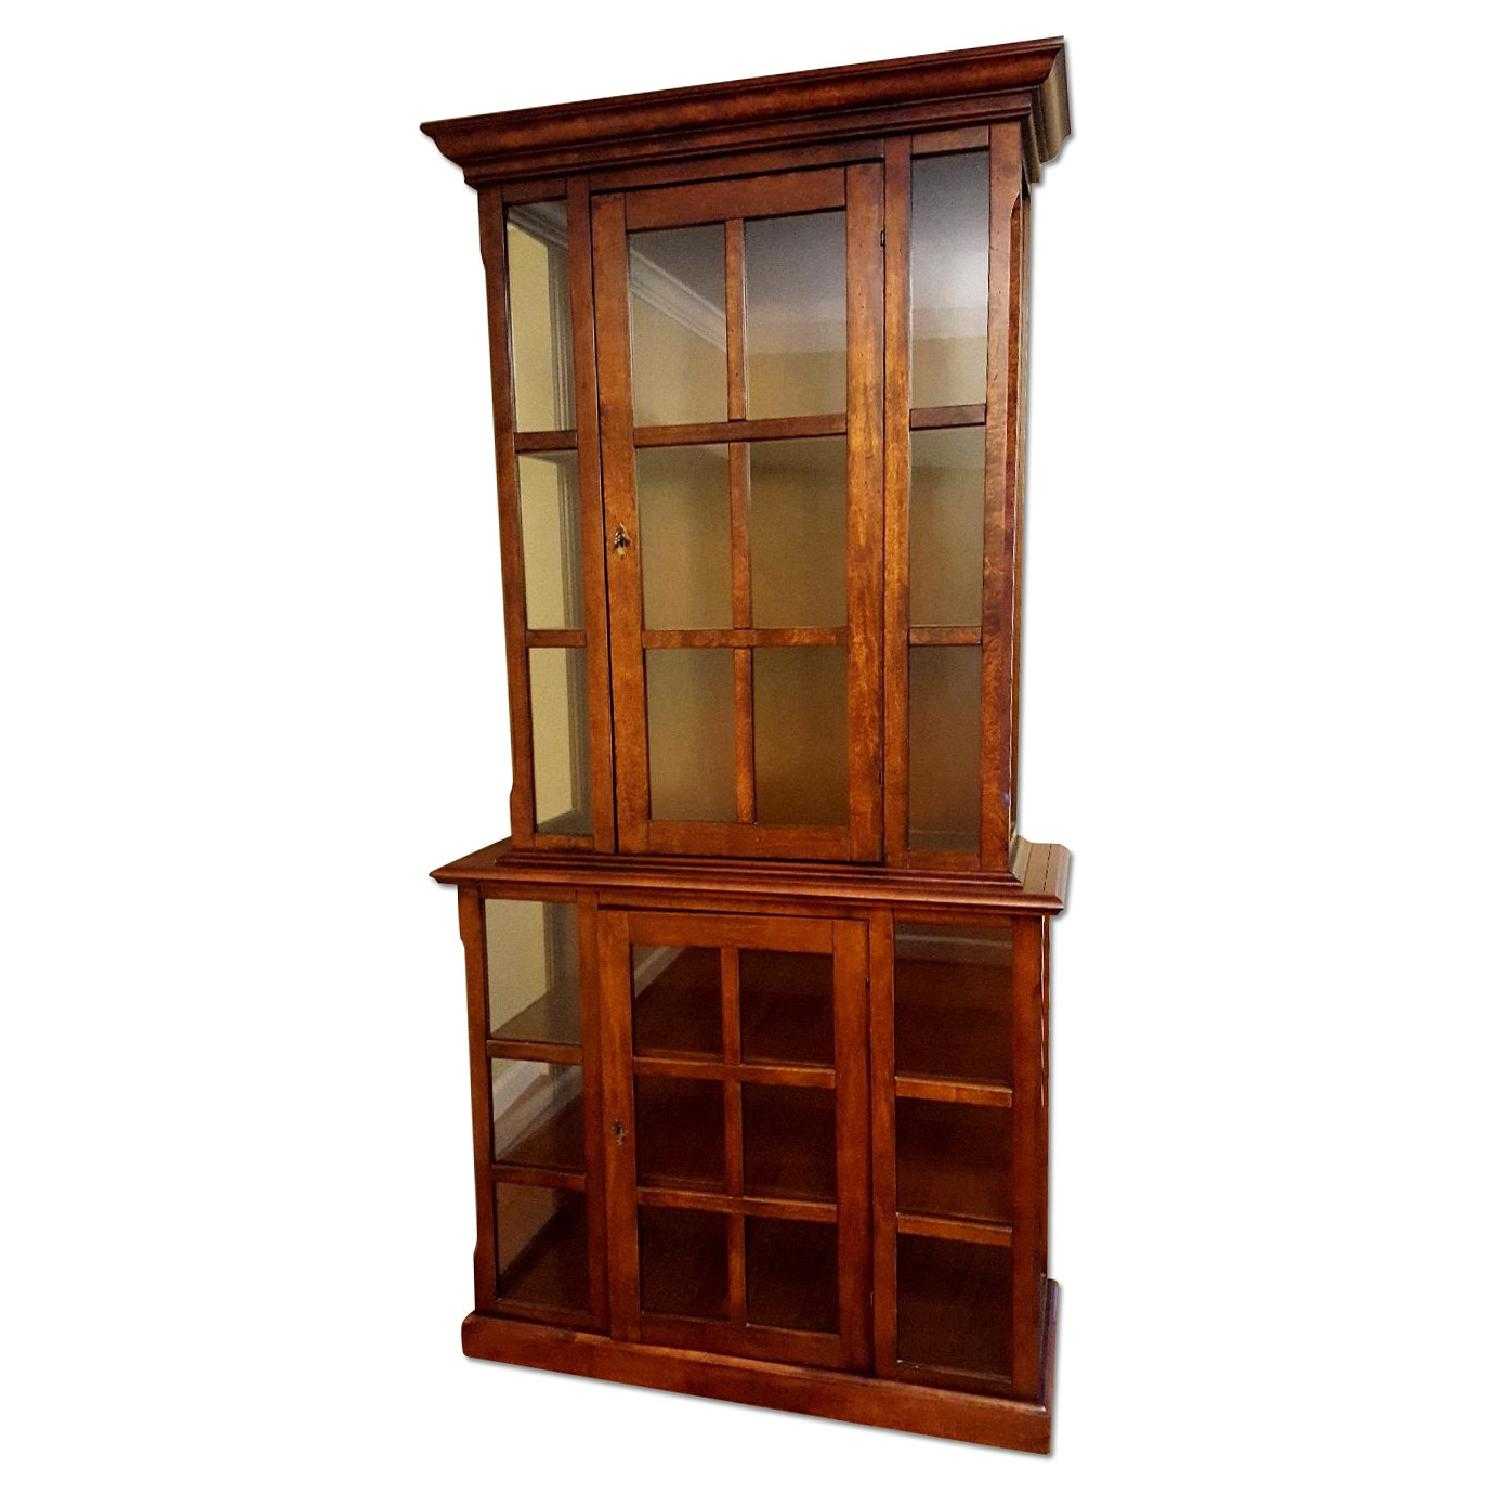 Crate & Barrel Wood & Glass Display Cabinet